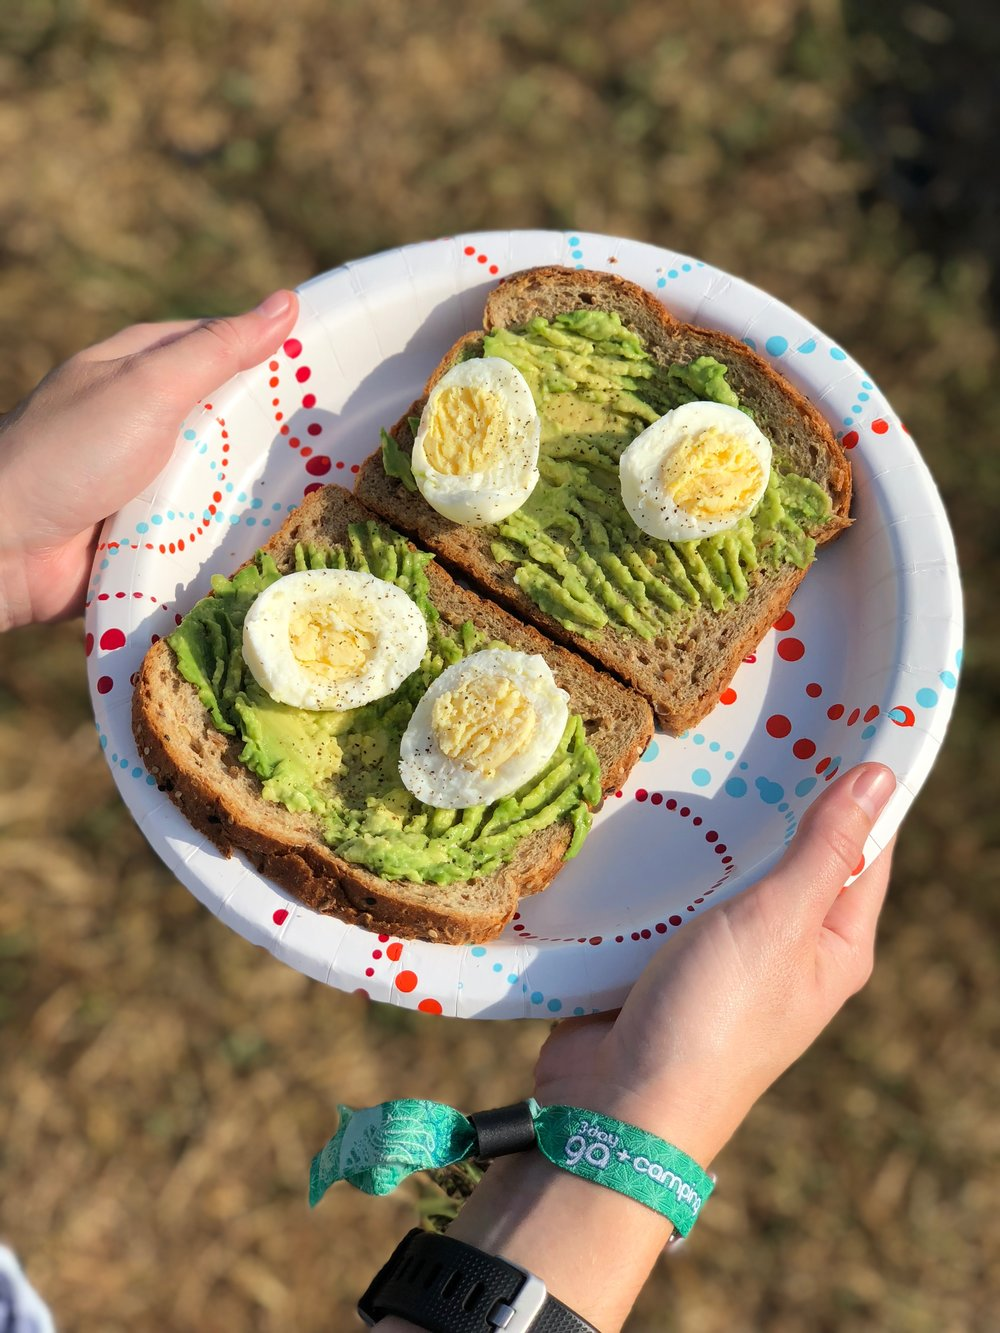 Whole grain bread, avocado, hard boiled eggs